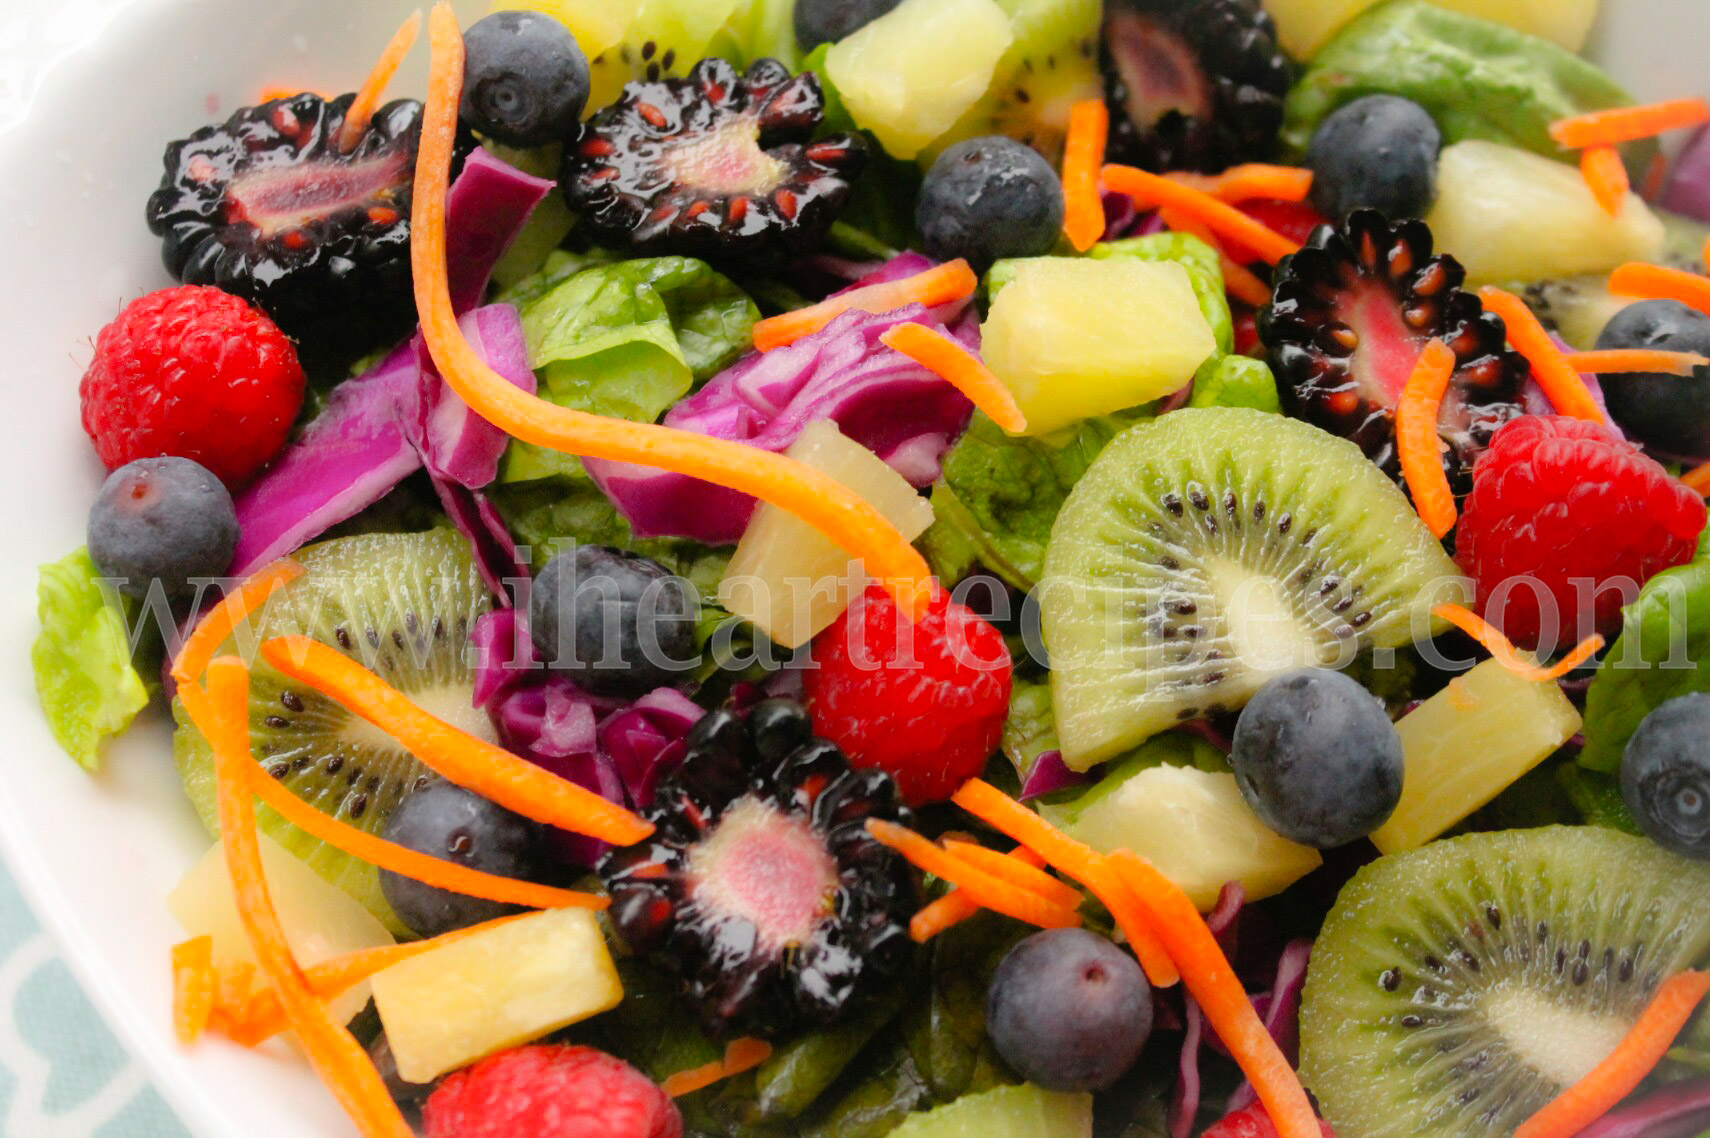 Sweet kiwi, raspberries, blackberries and blueberries make this paradise spring salad a fresh treat